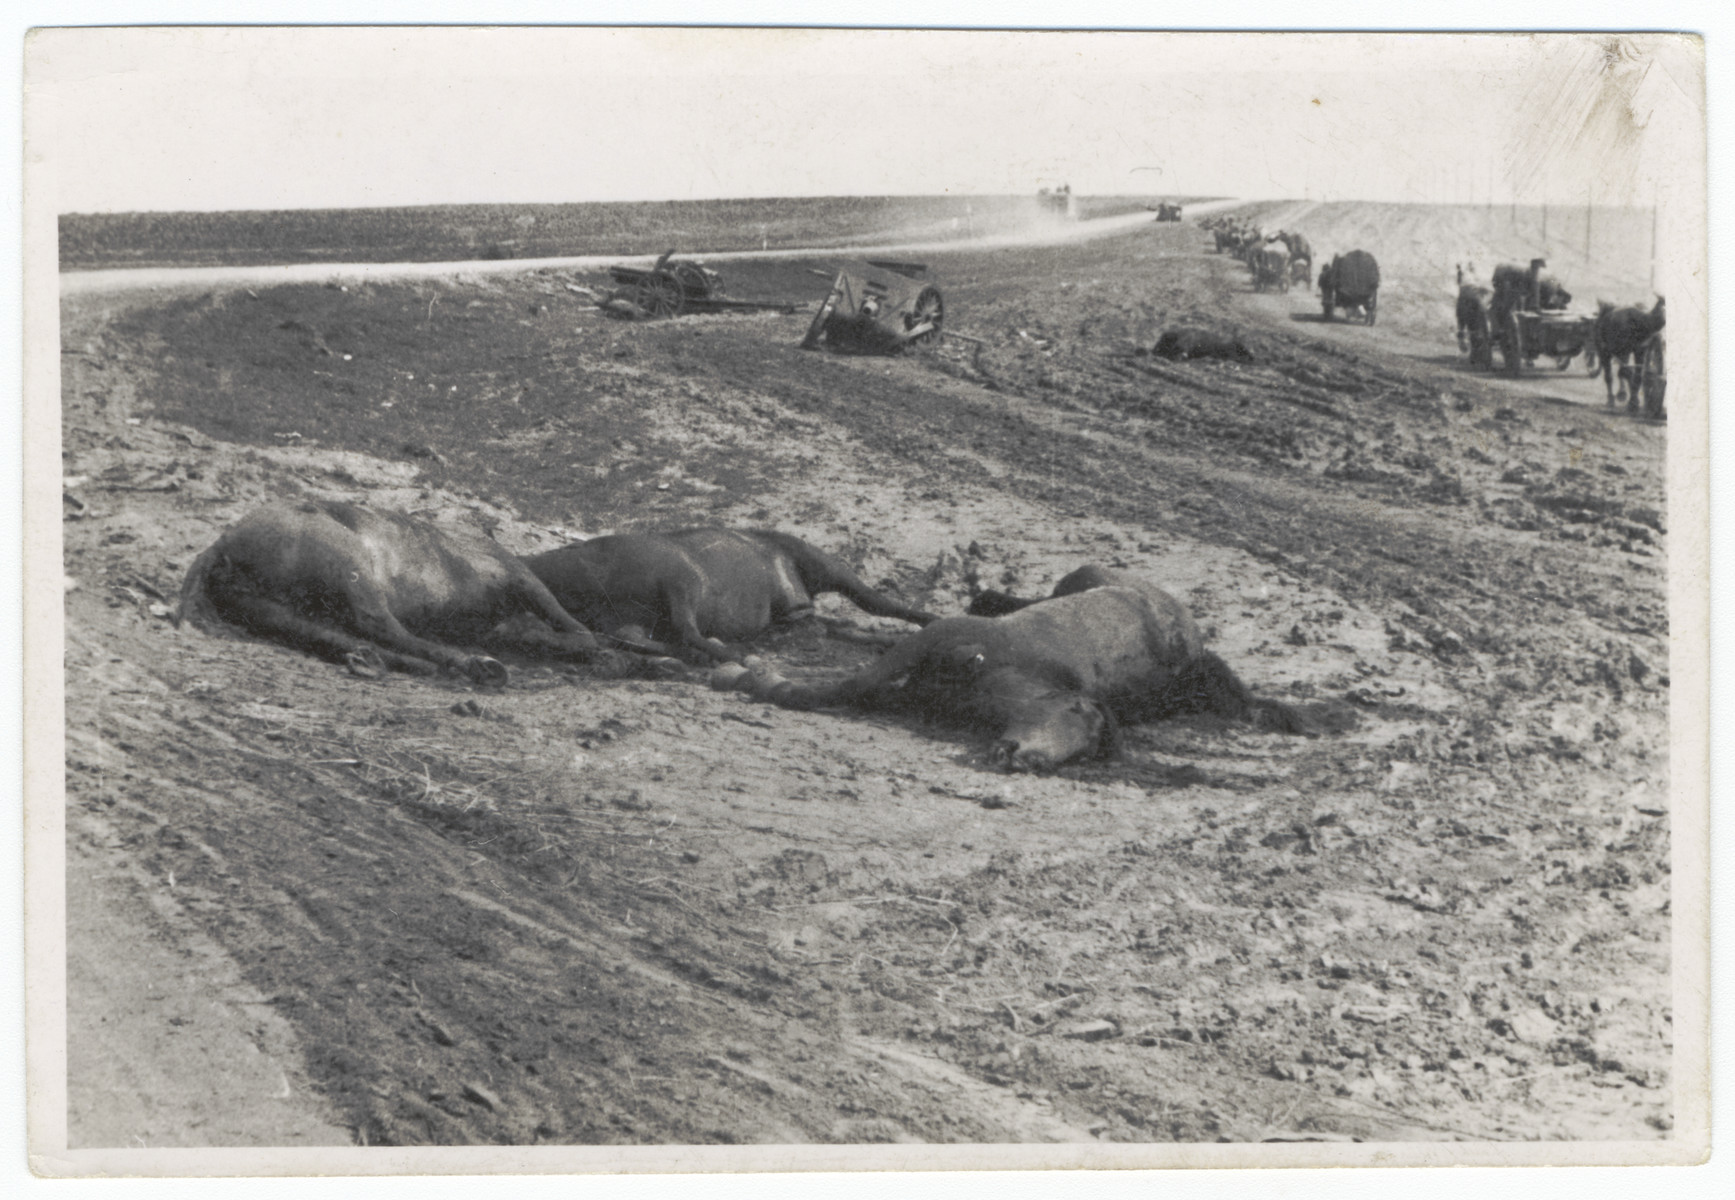 Dead horses lie on the side of a road [probably during the German invasion of the Soviet Union.]